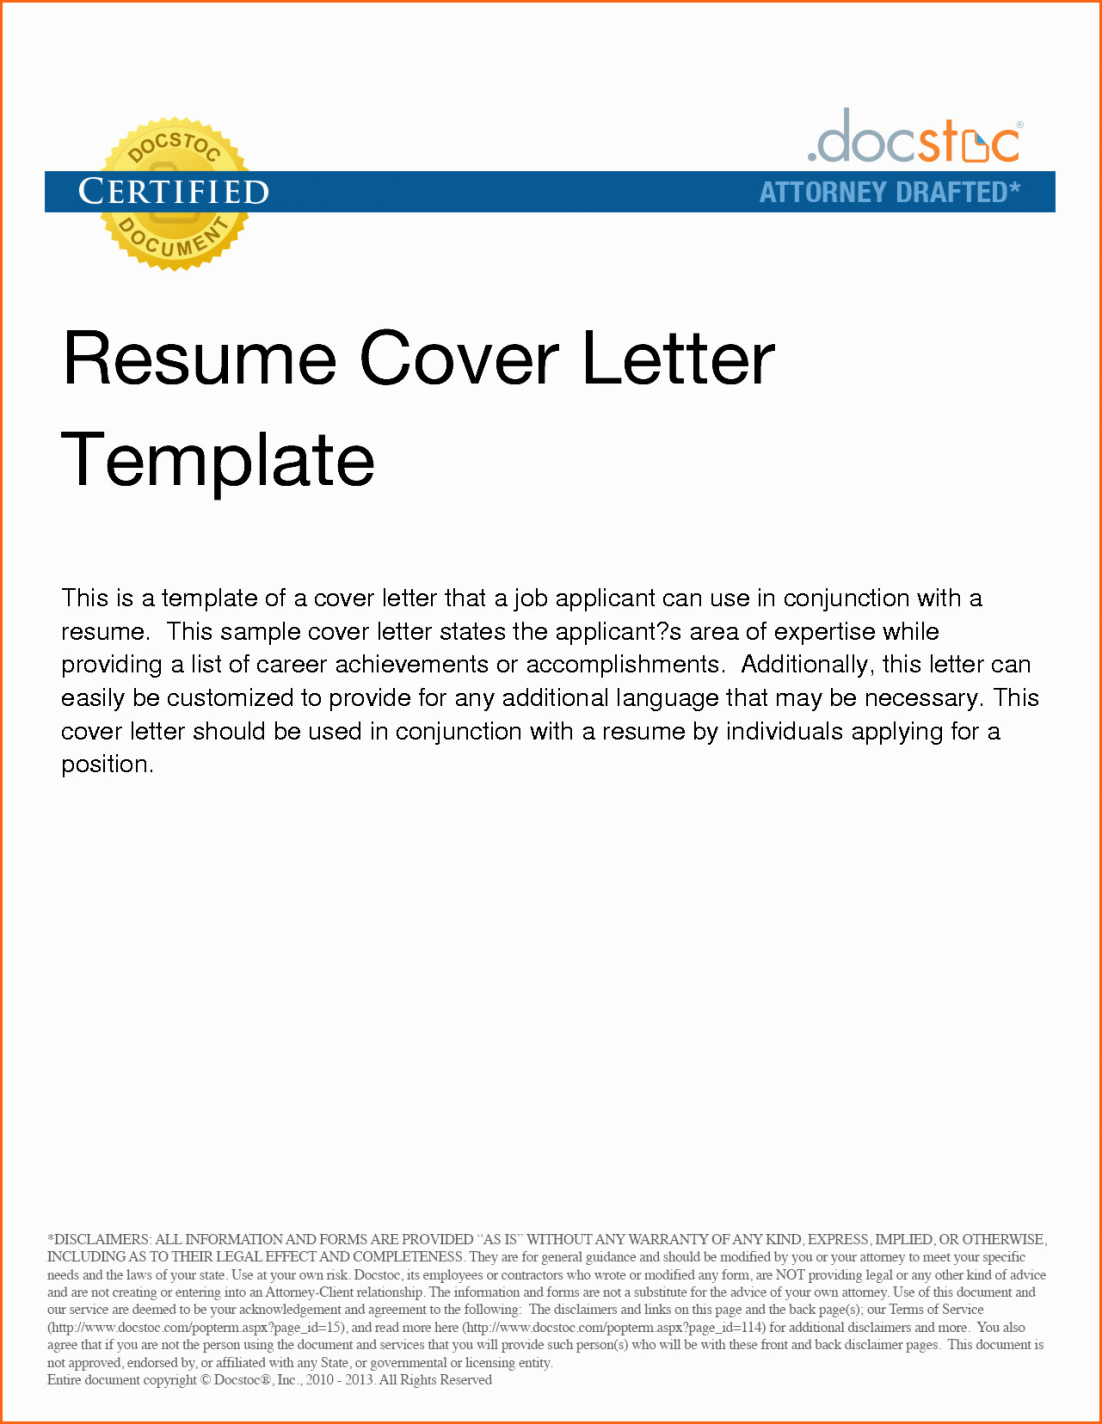 A Resume Cover Letter Template